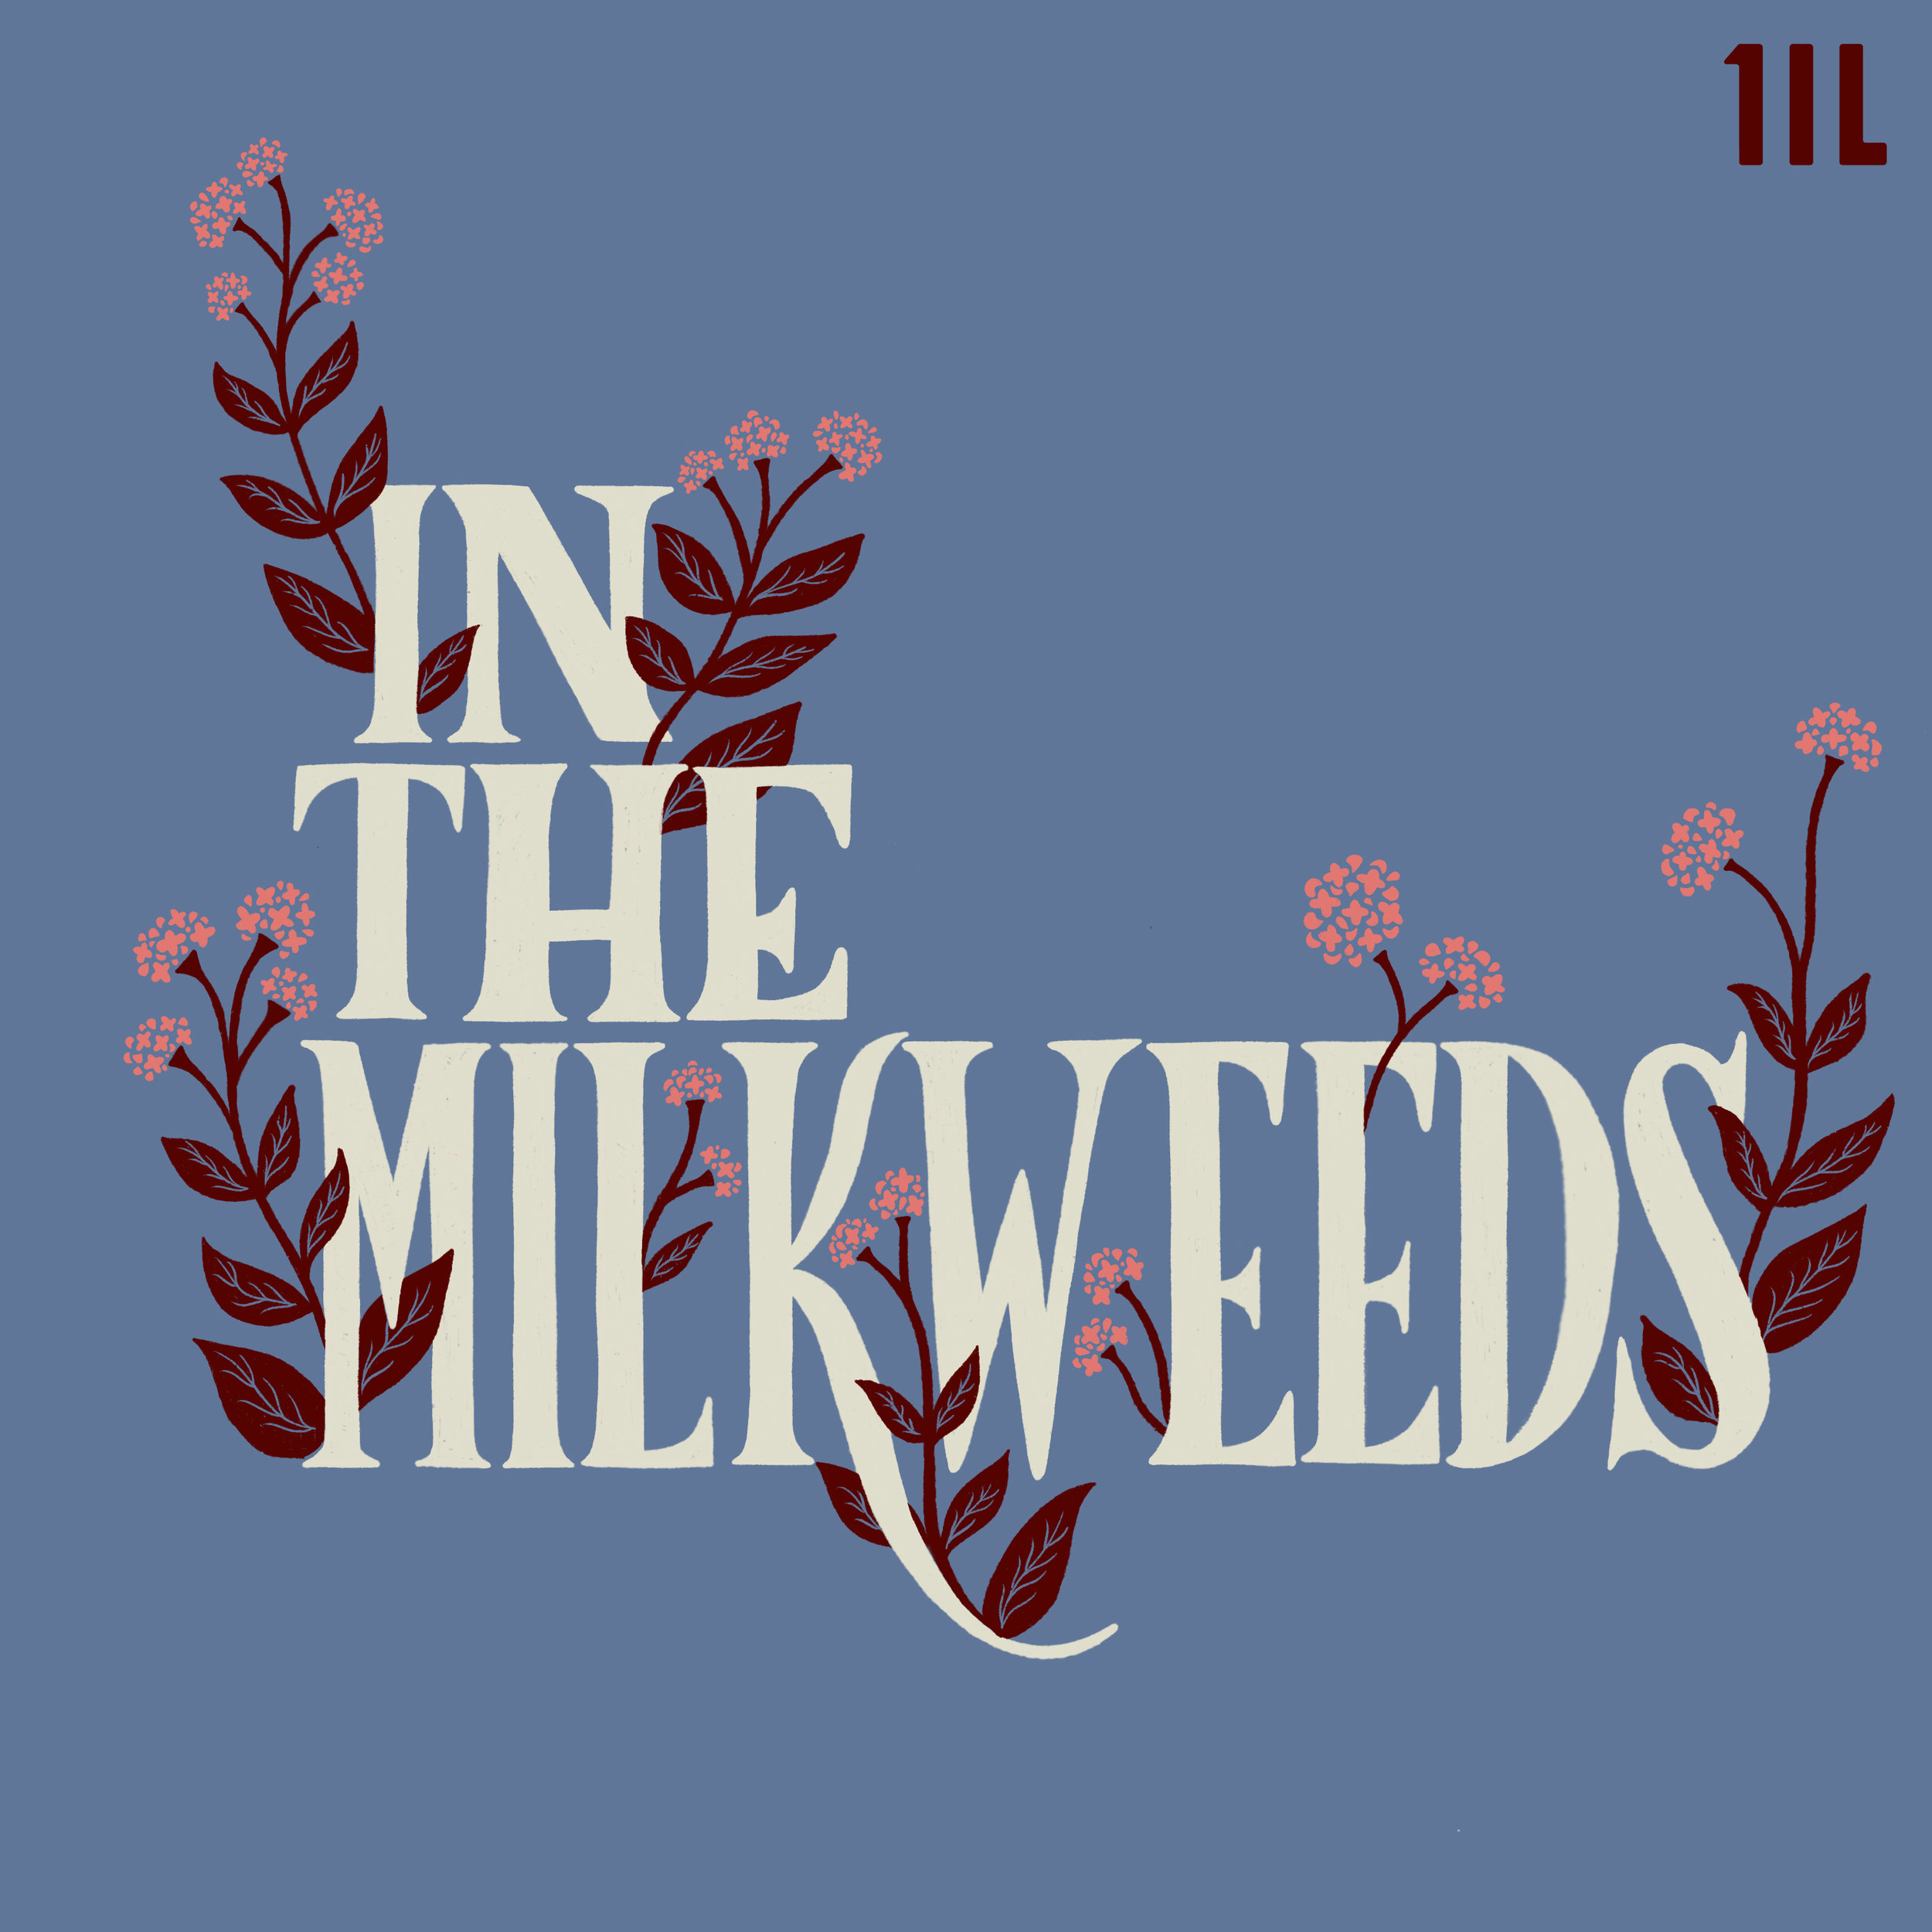 Another podcast but about weeds